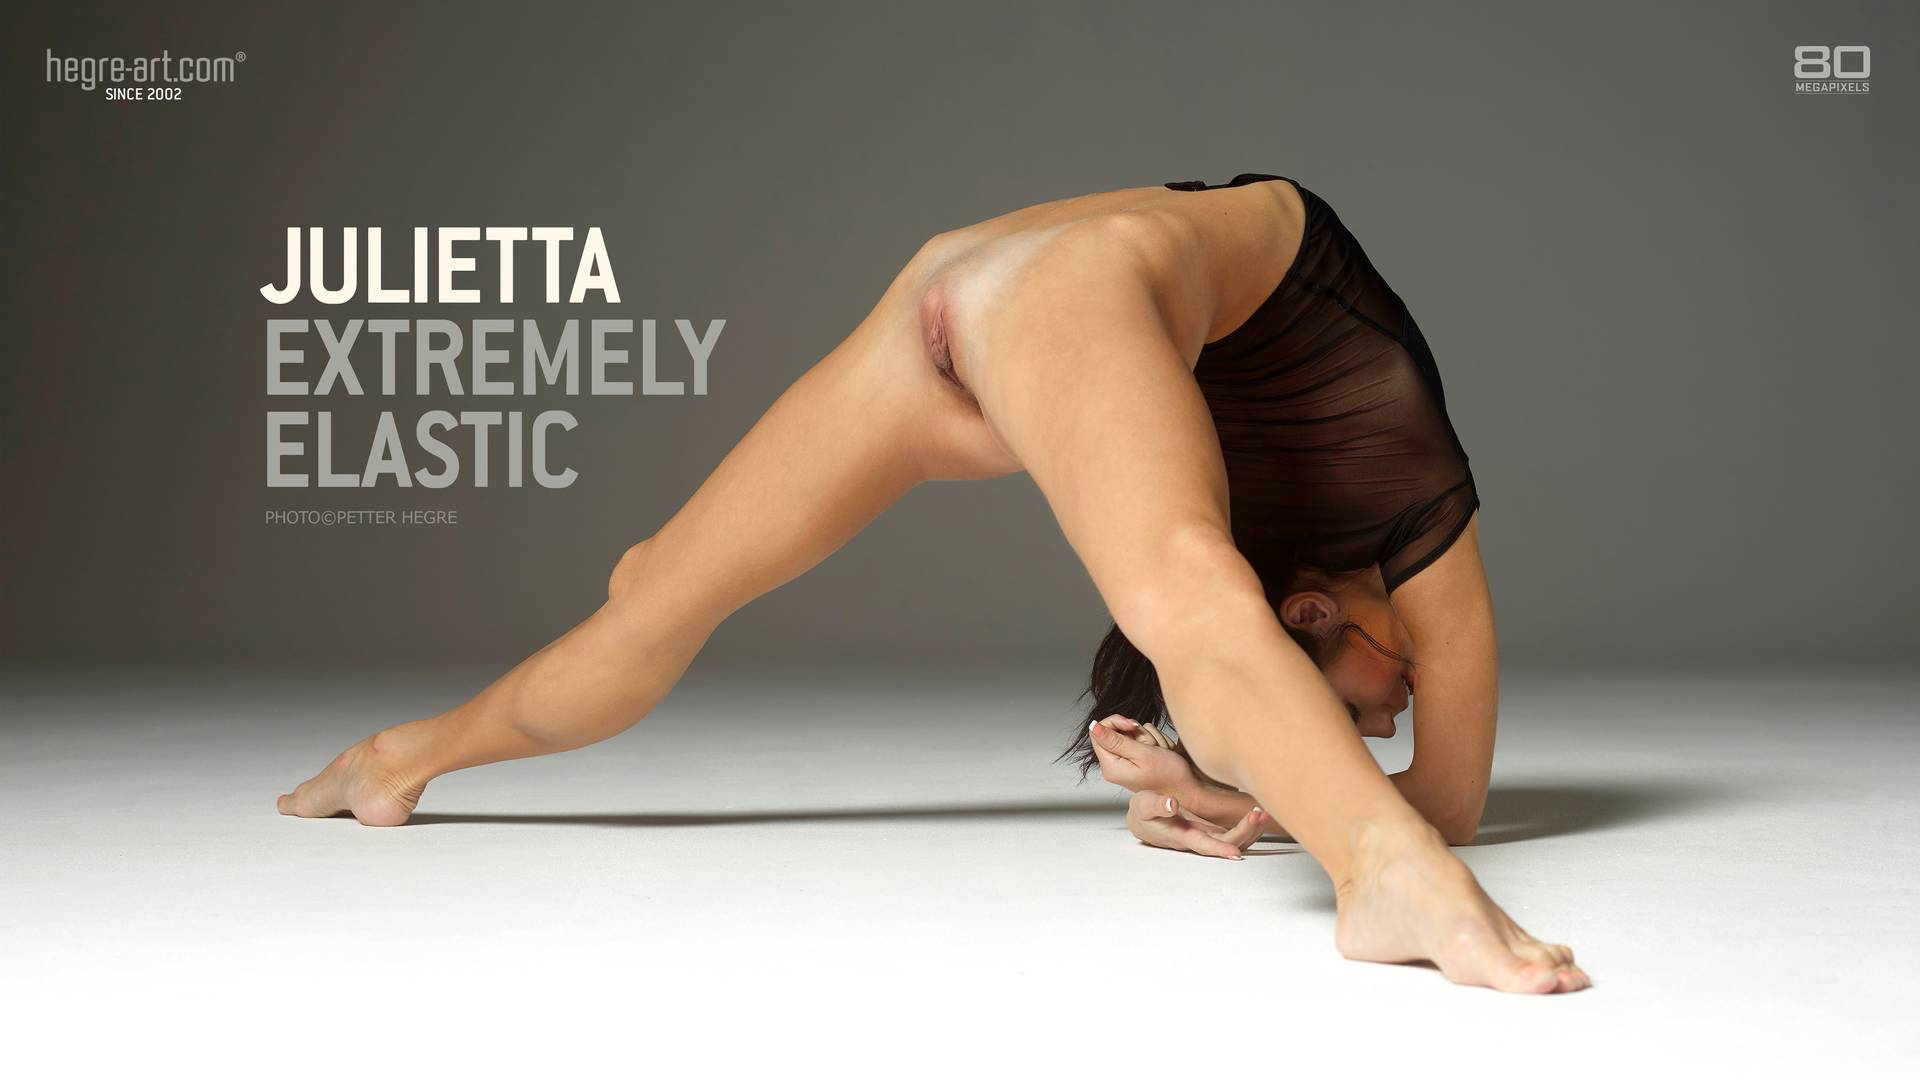 julietta-extremely-elastic-board-image-1920x